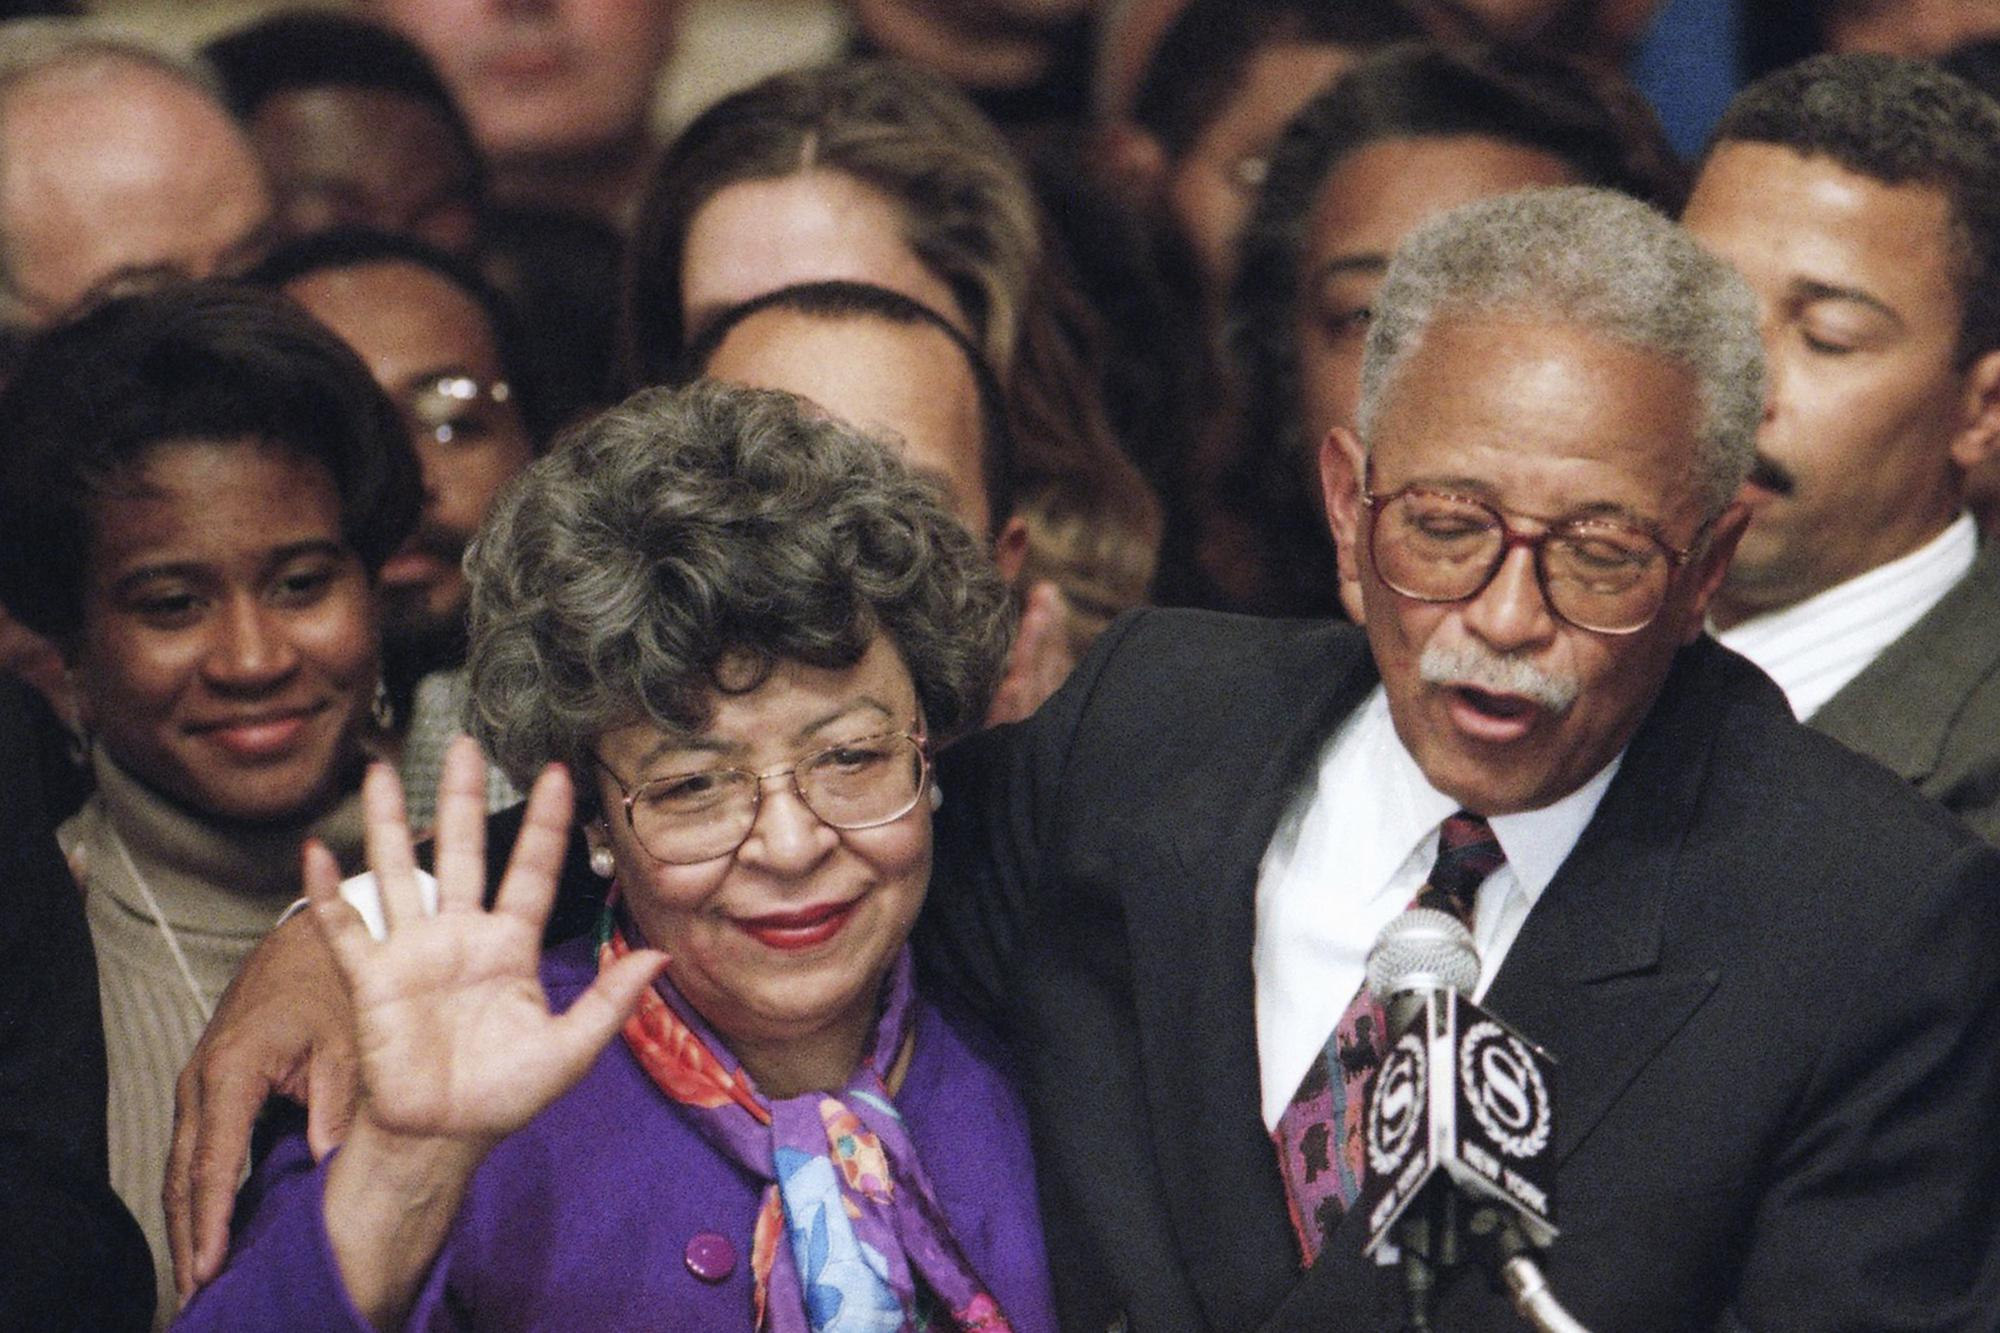 joyce dinkins wife of former nyc mayor david dinkins dies ap news